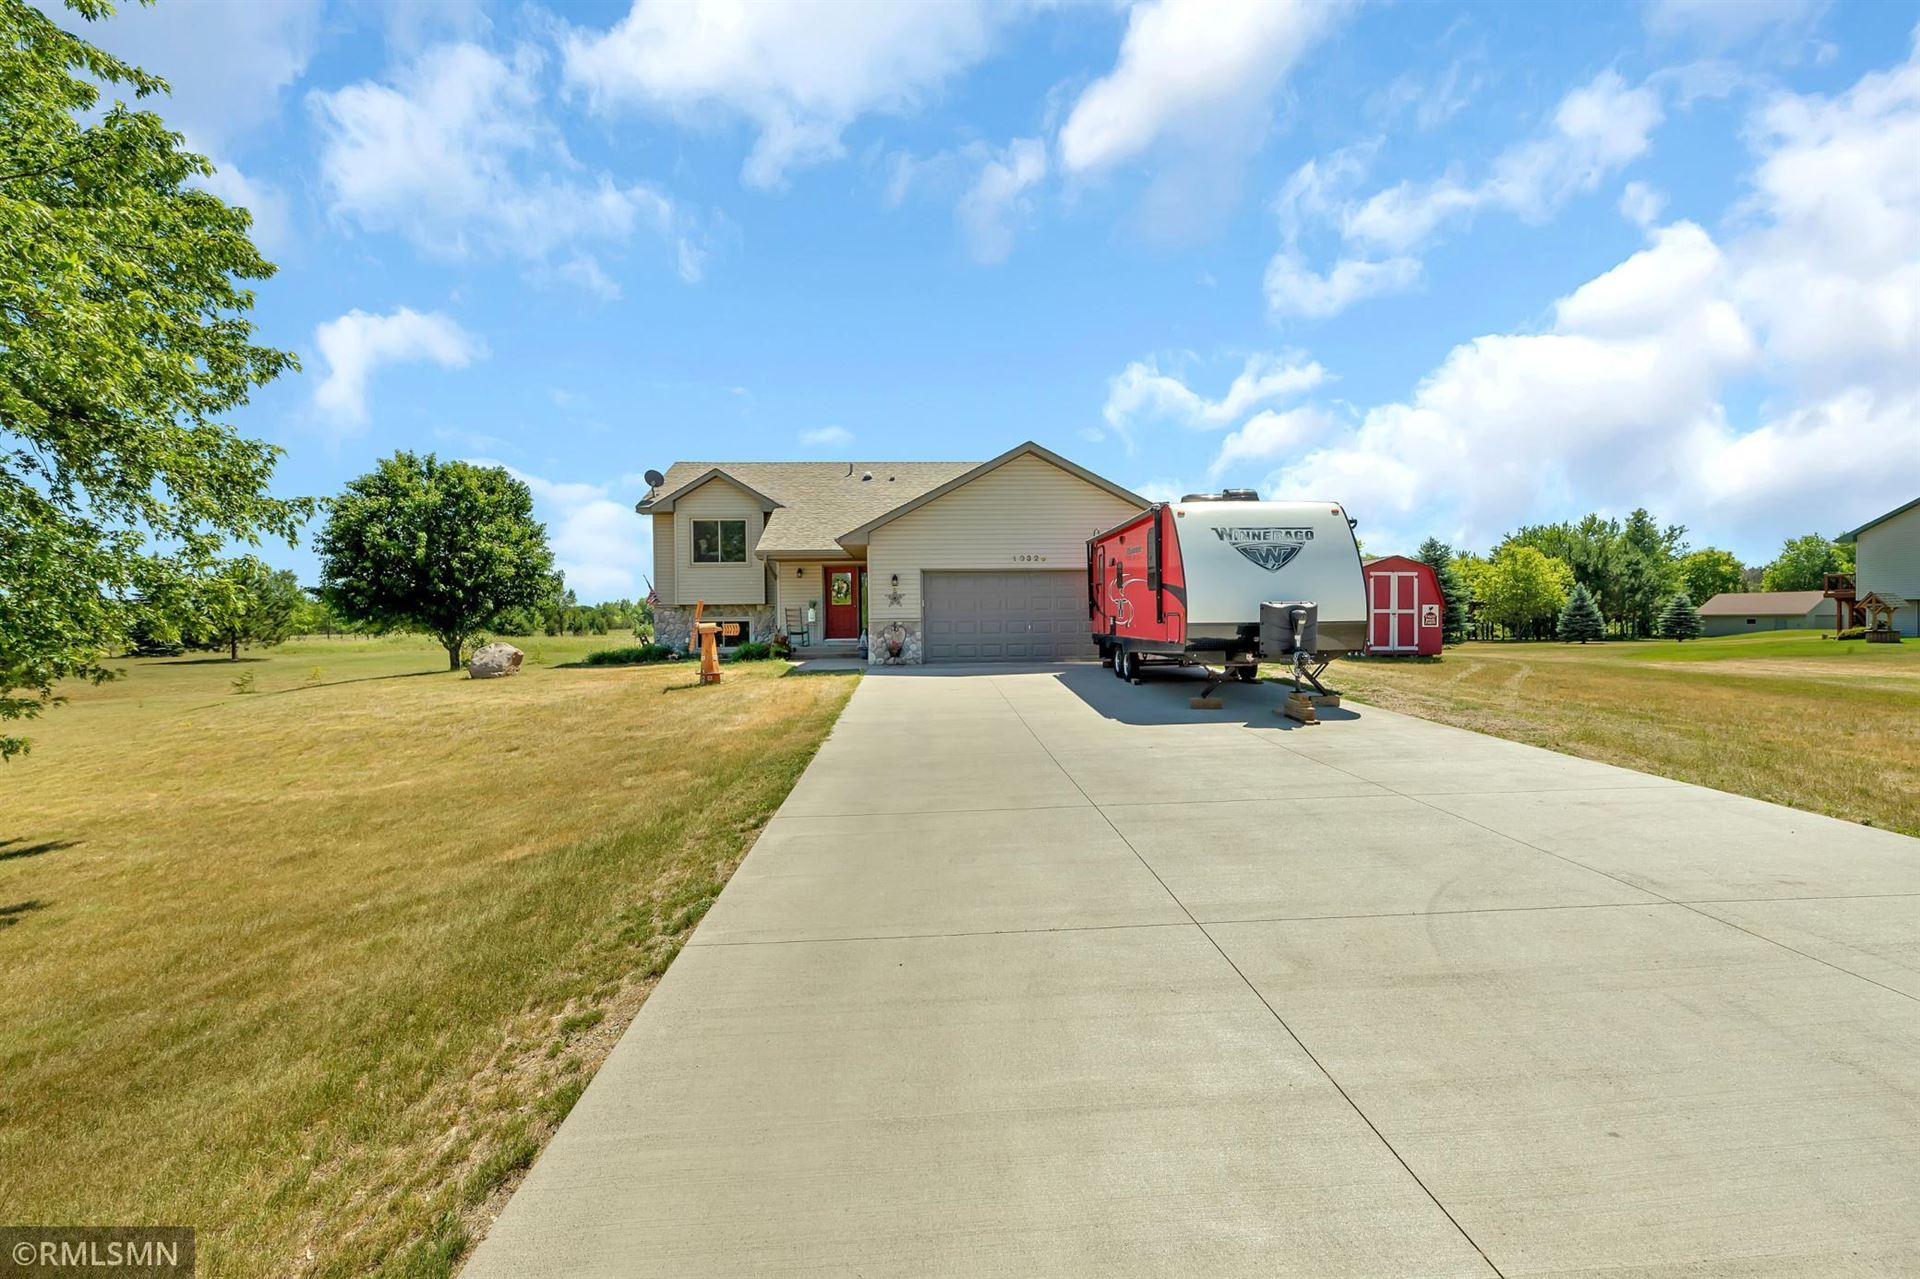 Photo of 10325 302nd Avenue NW, Princeton, MN 55371 (MLS # 6007916)